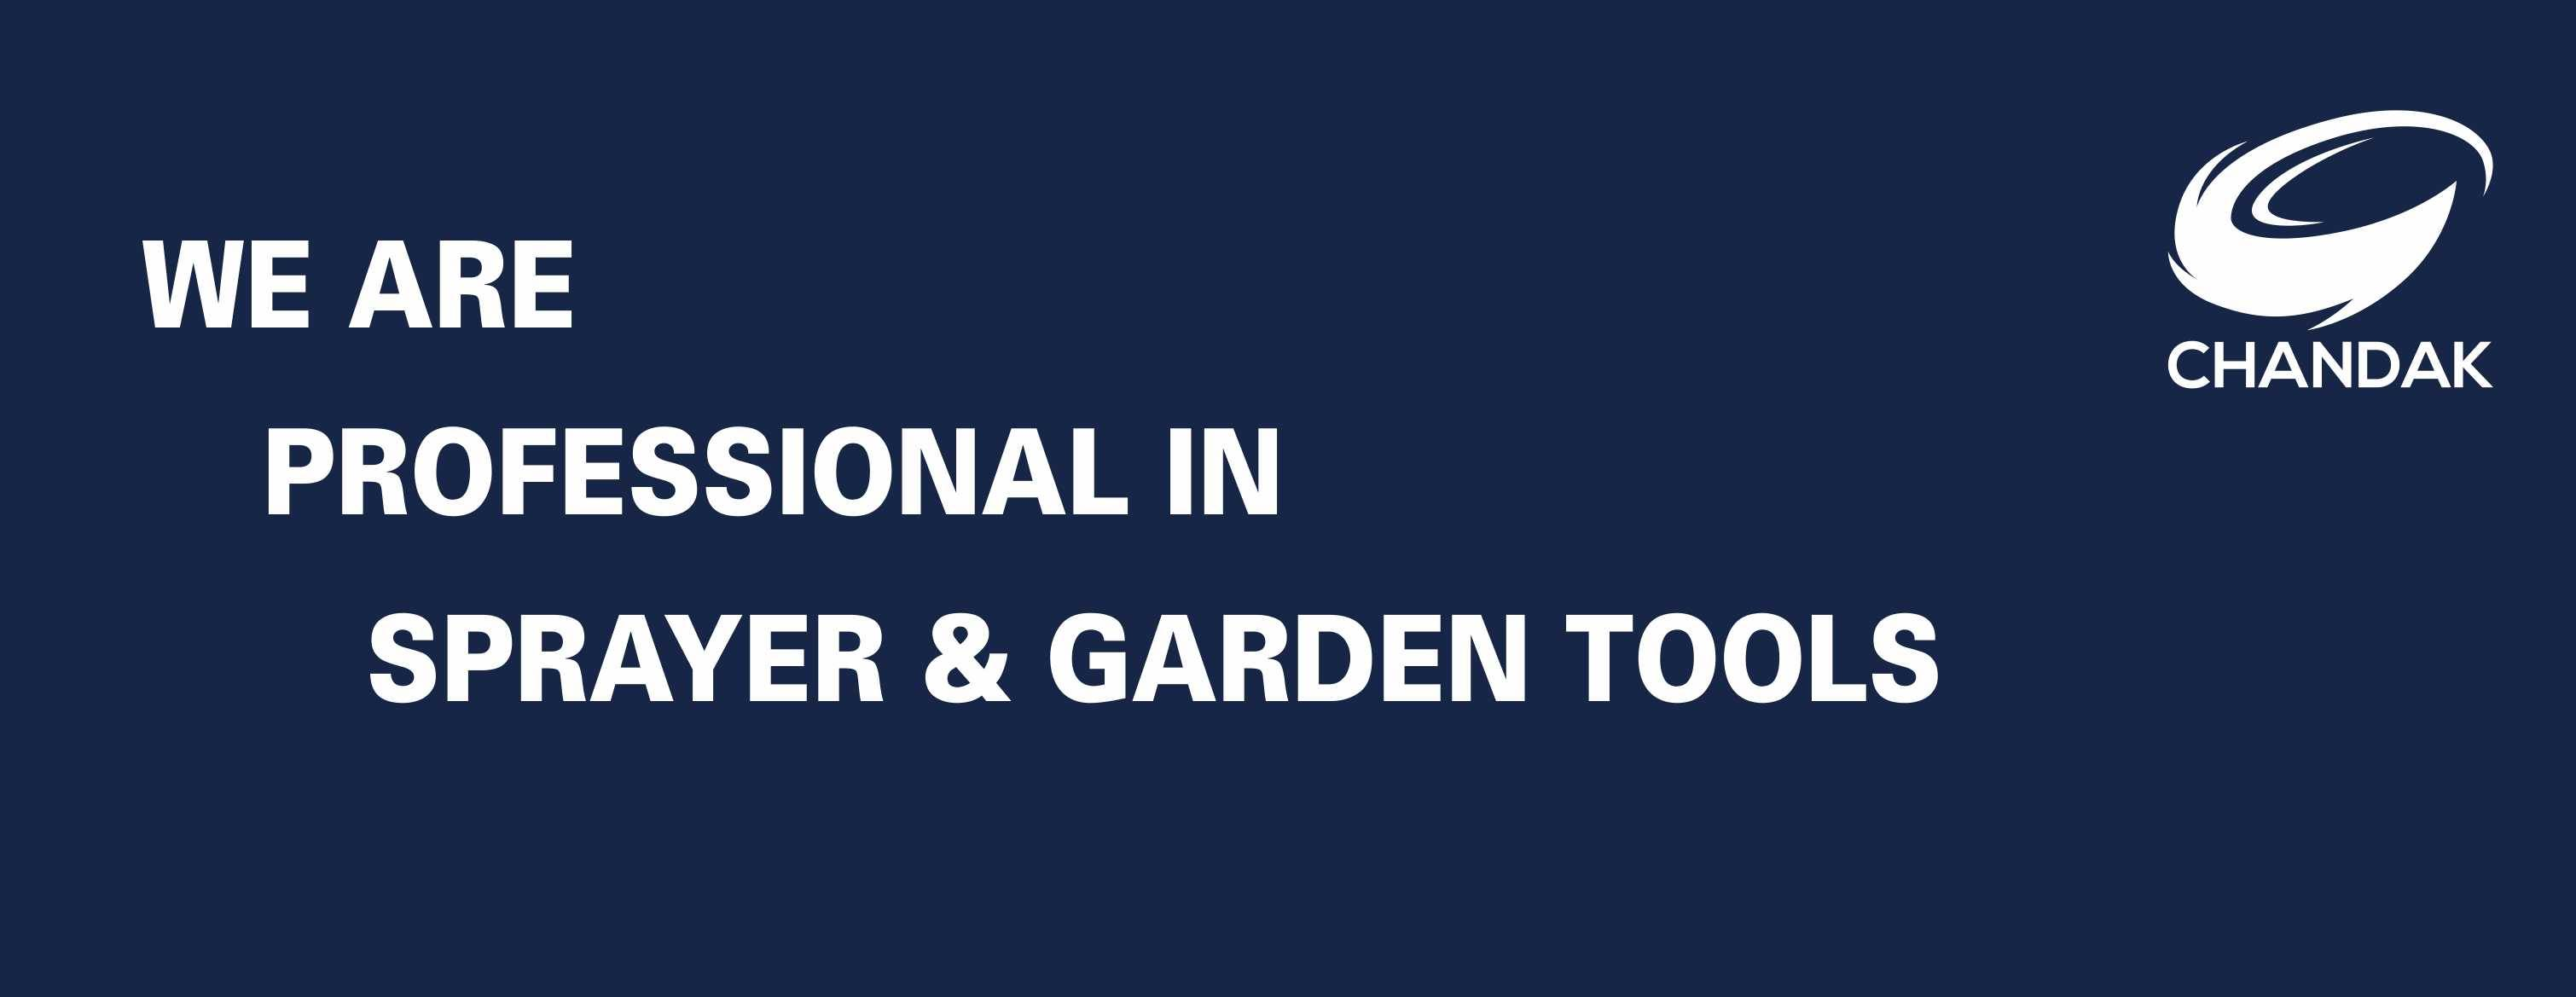 Sprayer and Garden Tools